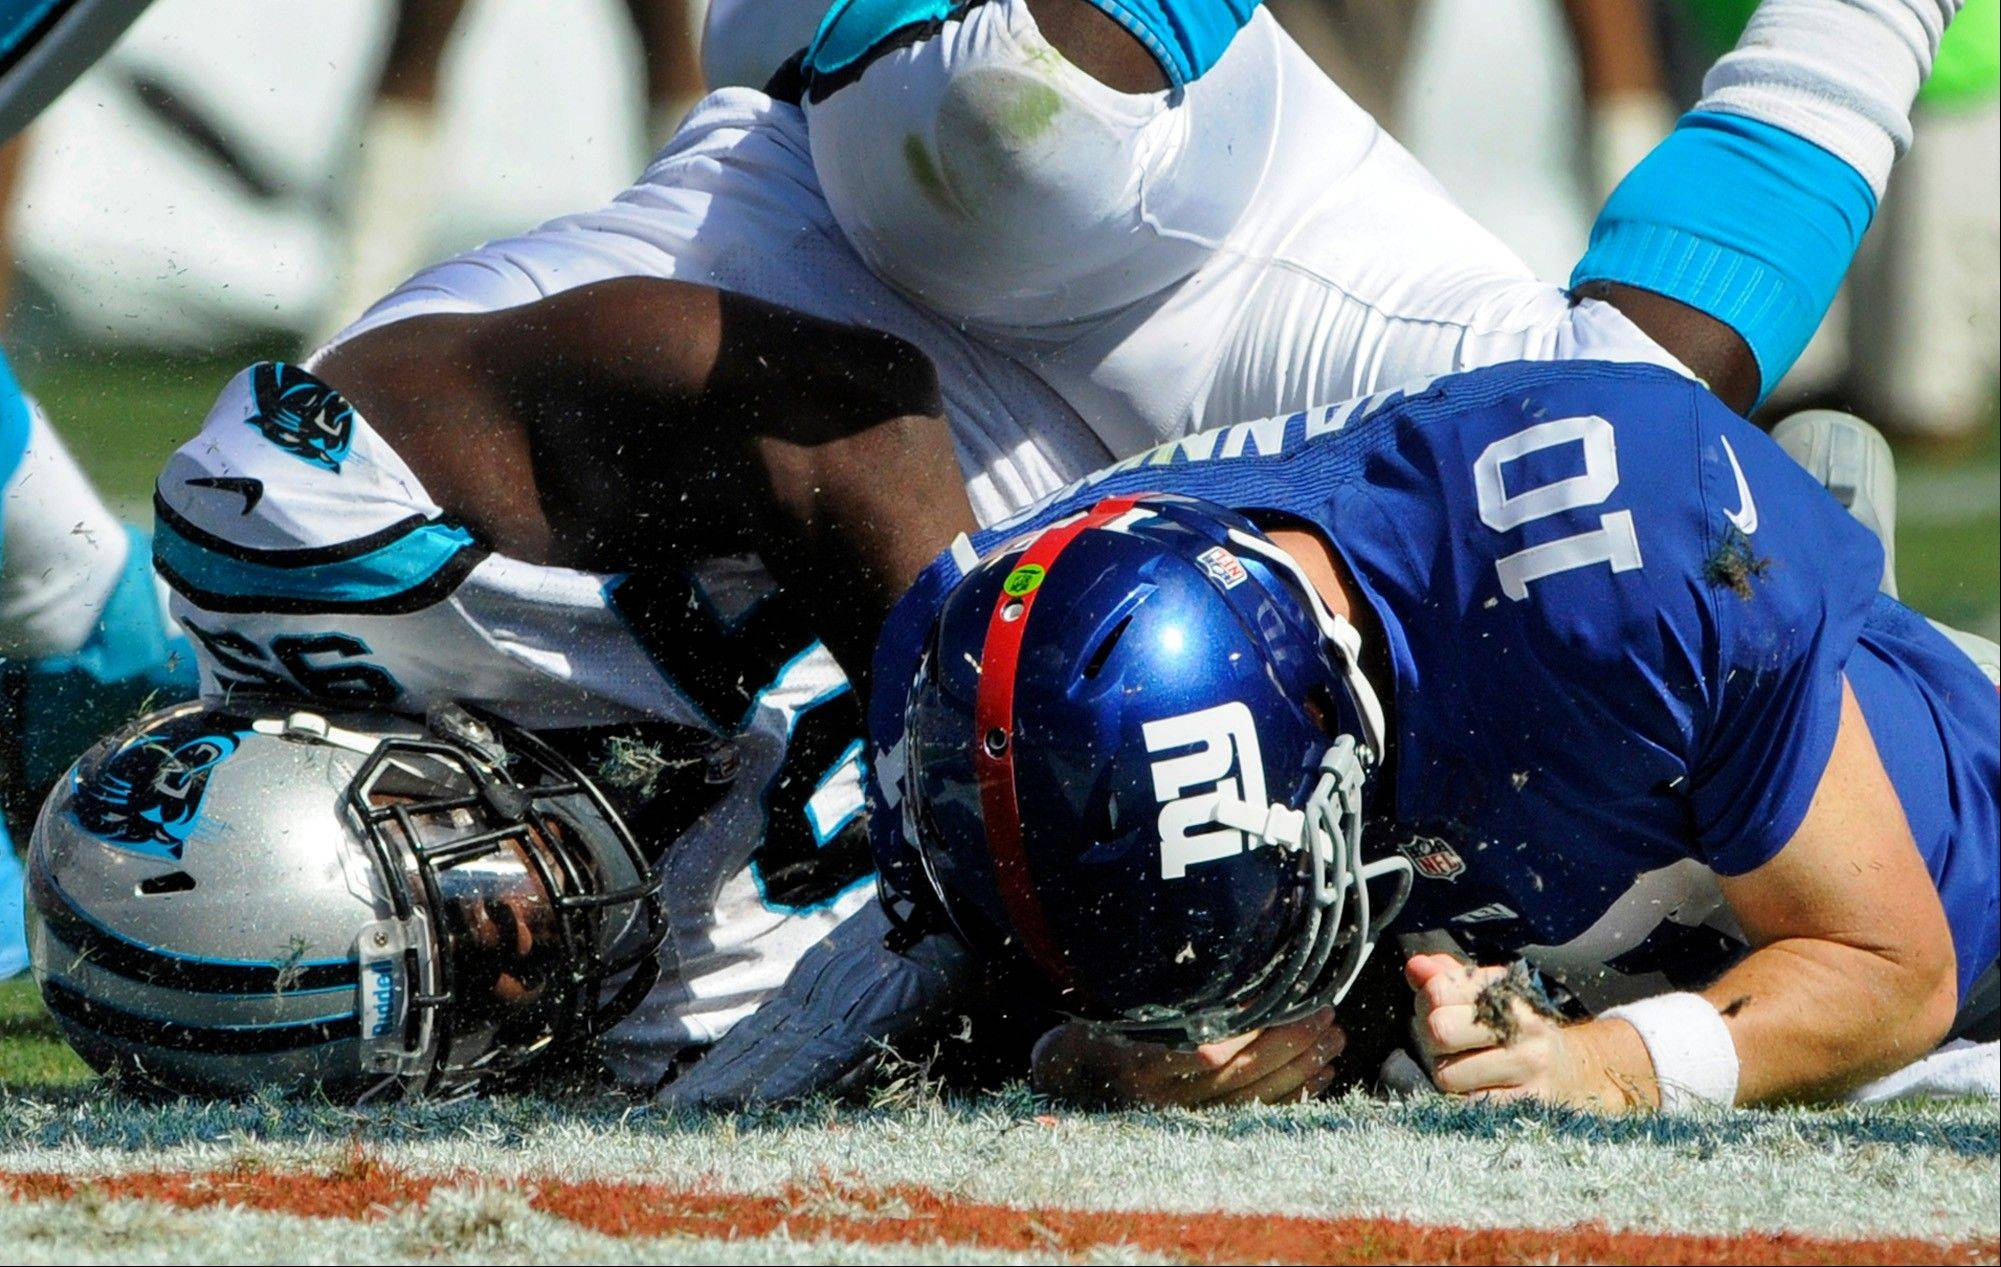 New York Giants' Eli Manning (10) is sacked by Carolina Panthers' Charles Johnson (95) during the second half of a game Sunday in Charlotte, N.C.. There have been 97 sacks in Week 3, five short of the record set in 1986's 11th week.